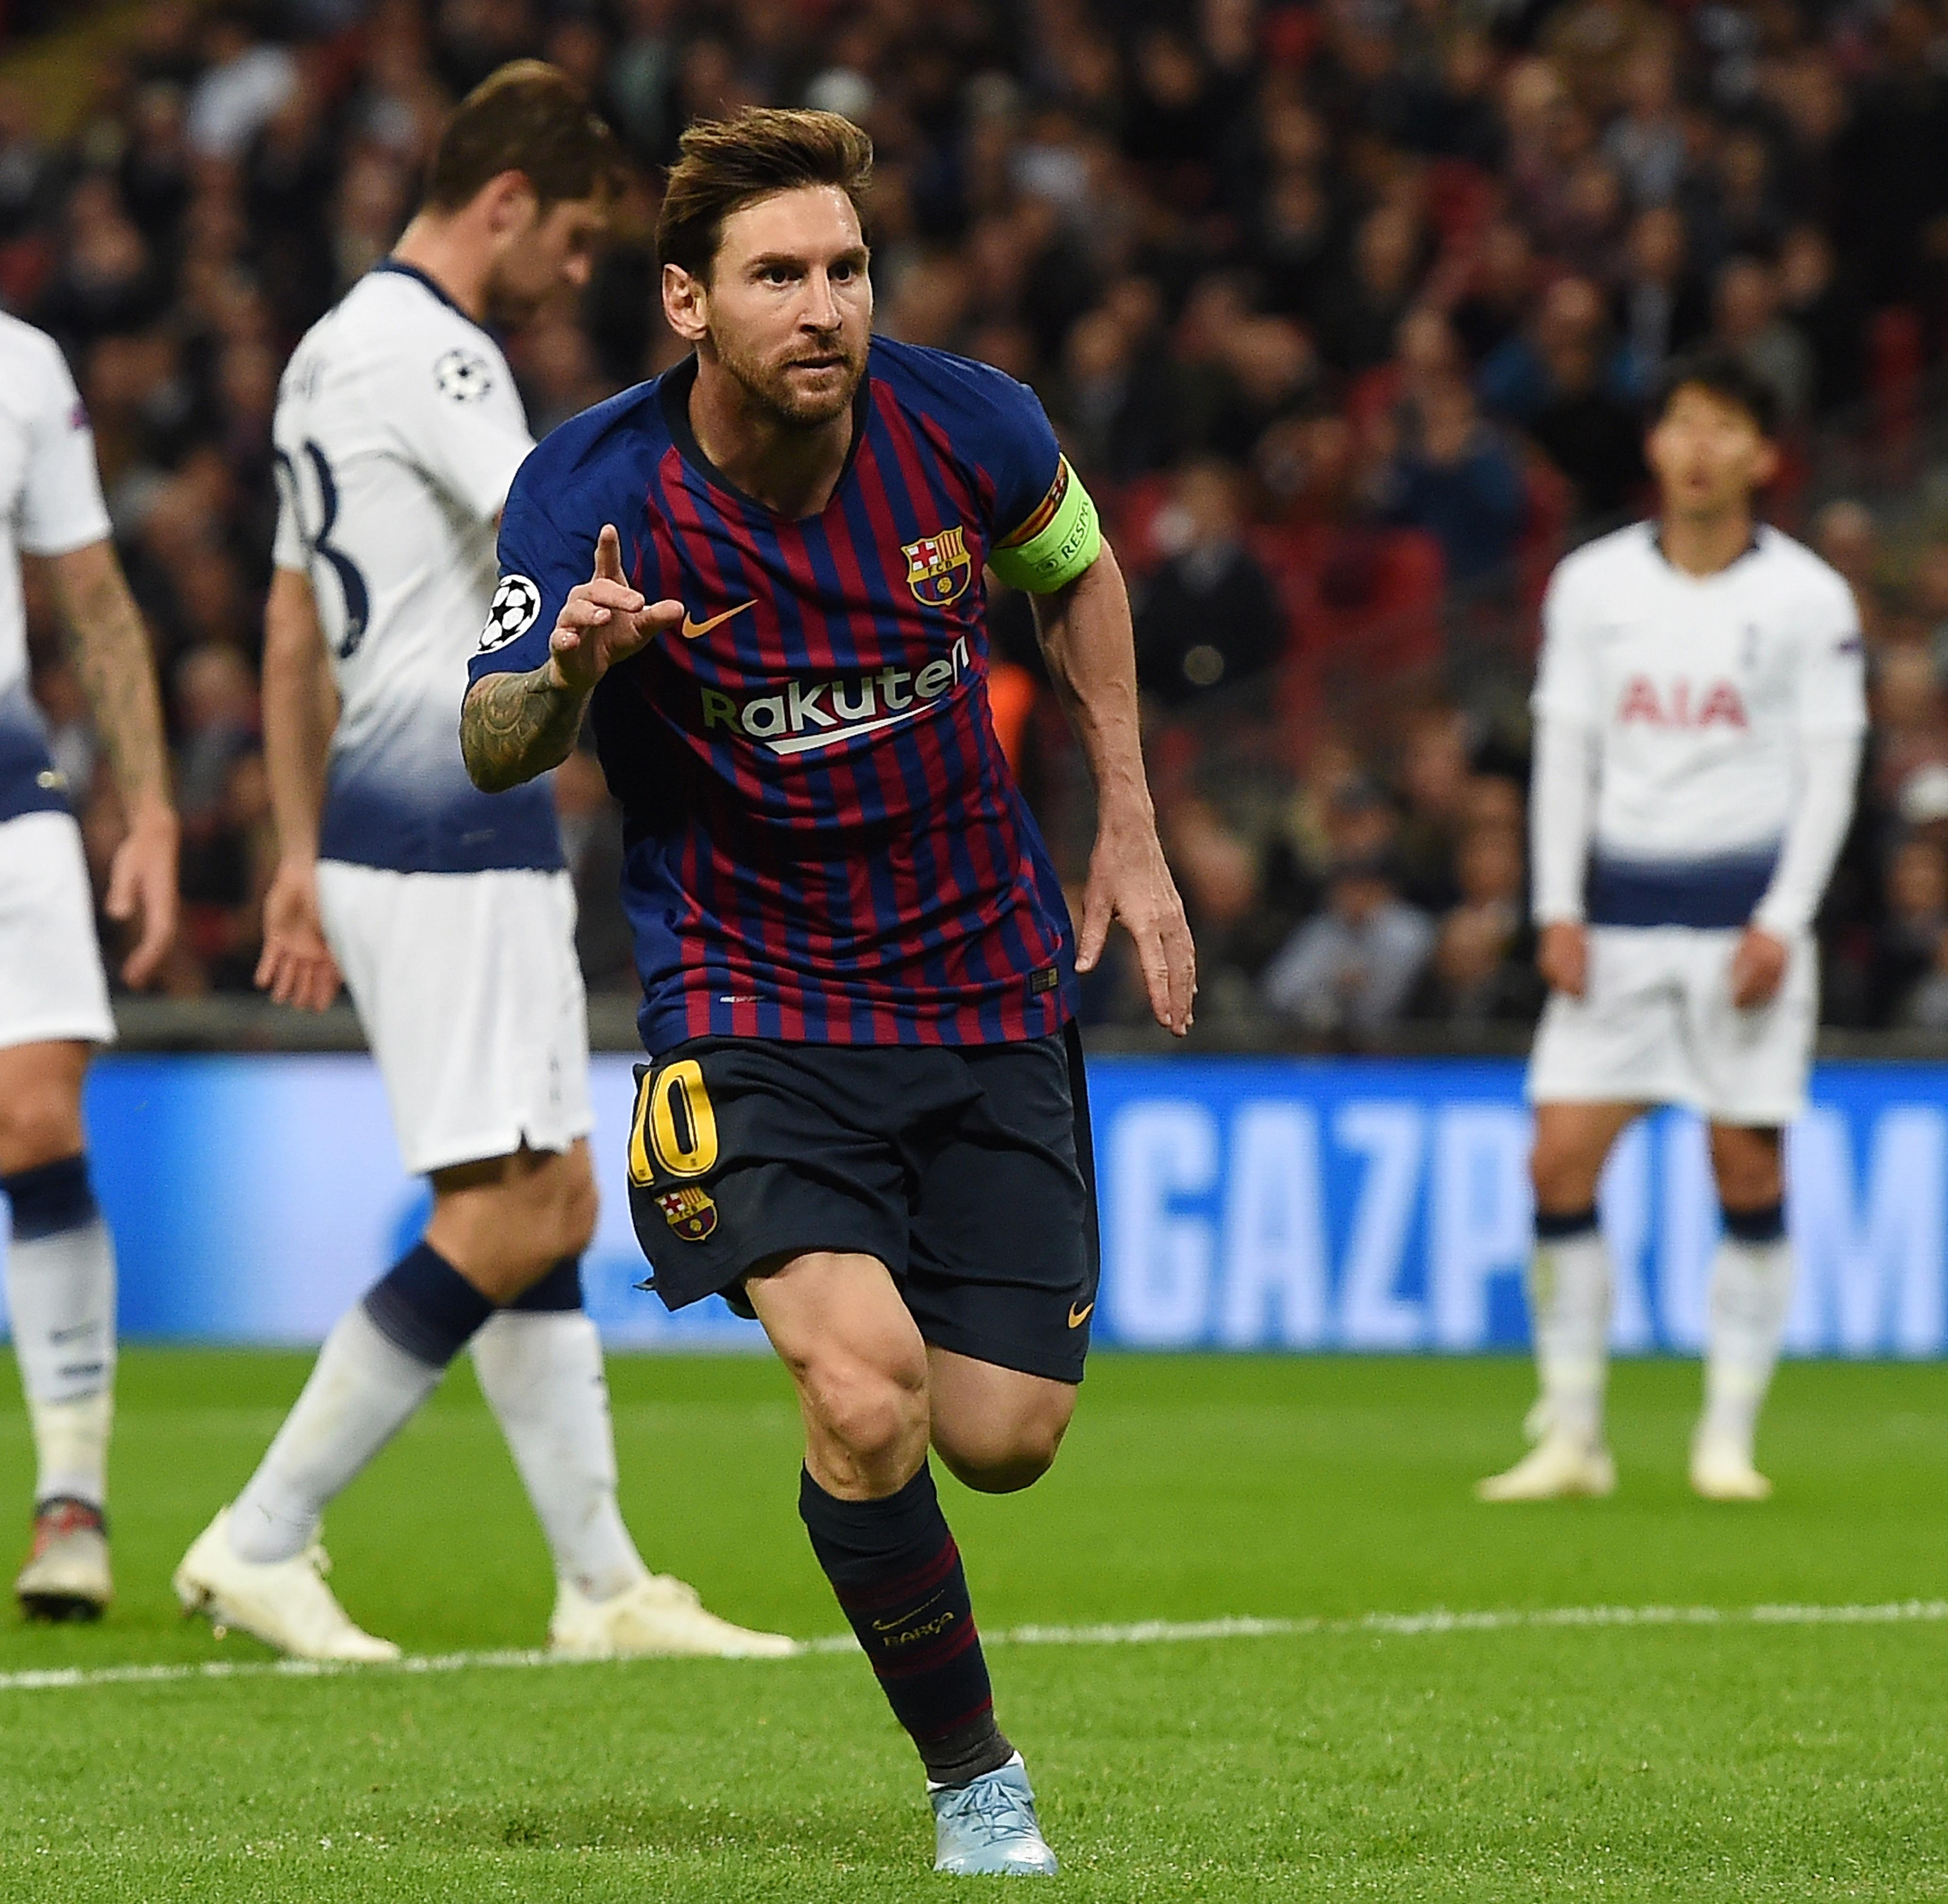 Lionel Messi scored twice to help down Tottenham at Wembley